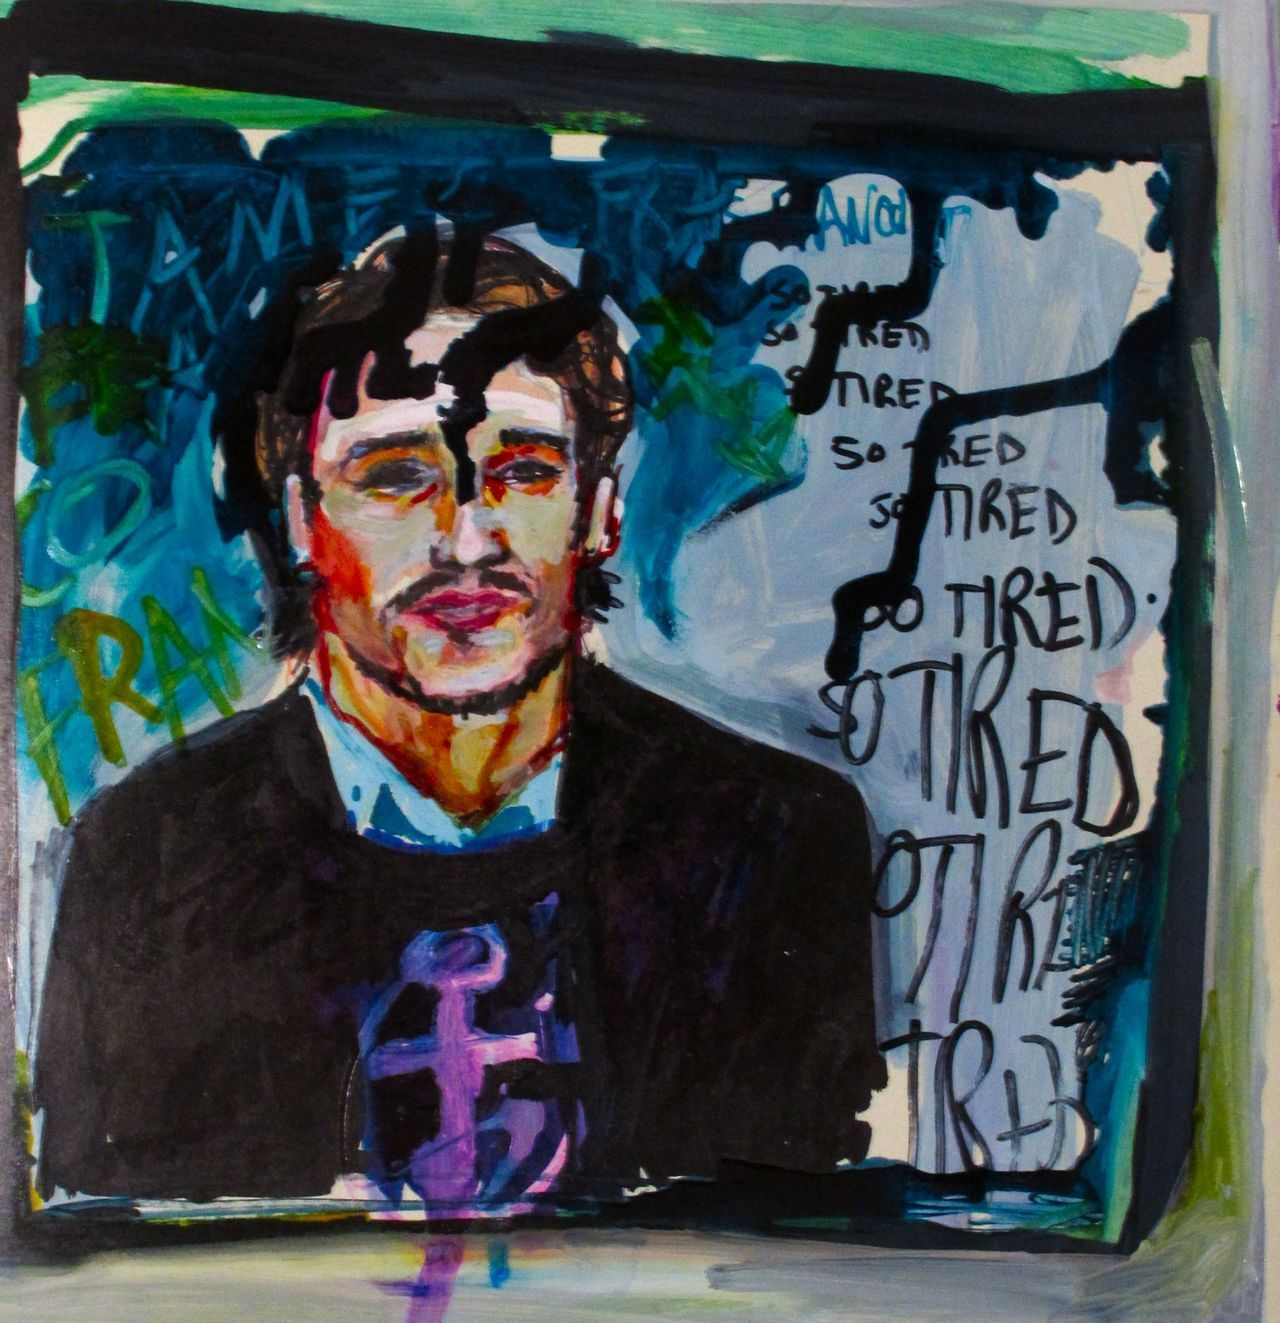 """I am James Franco and I am so tired."" © Elizabeth Grammaticas 2012."